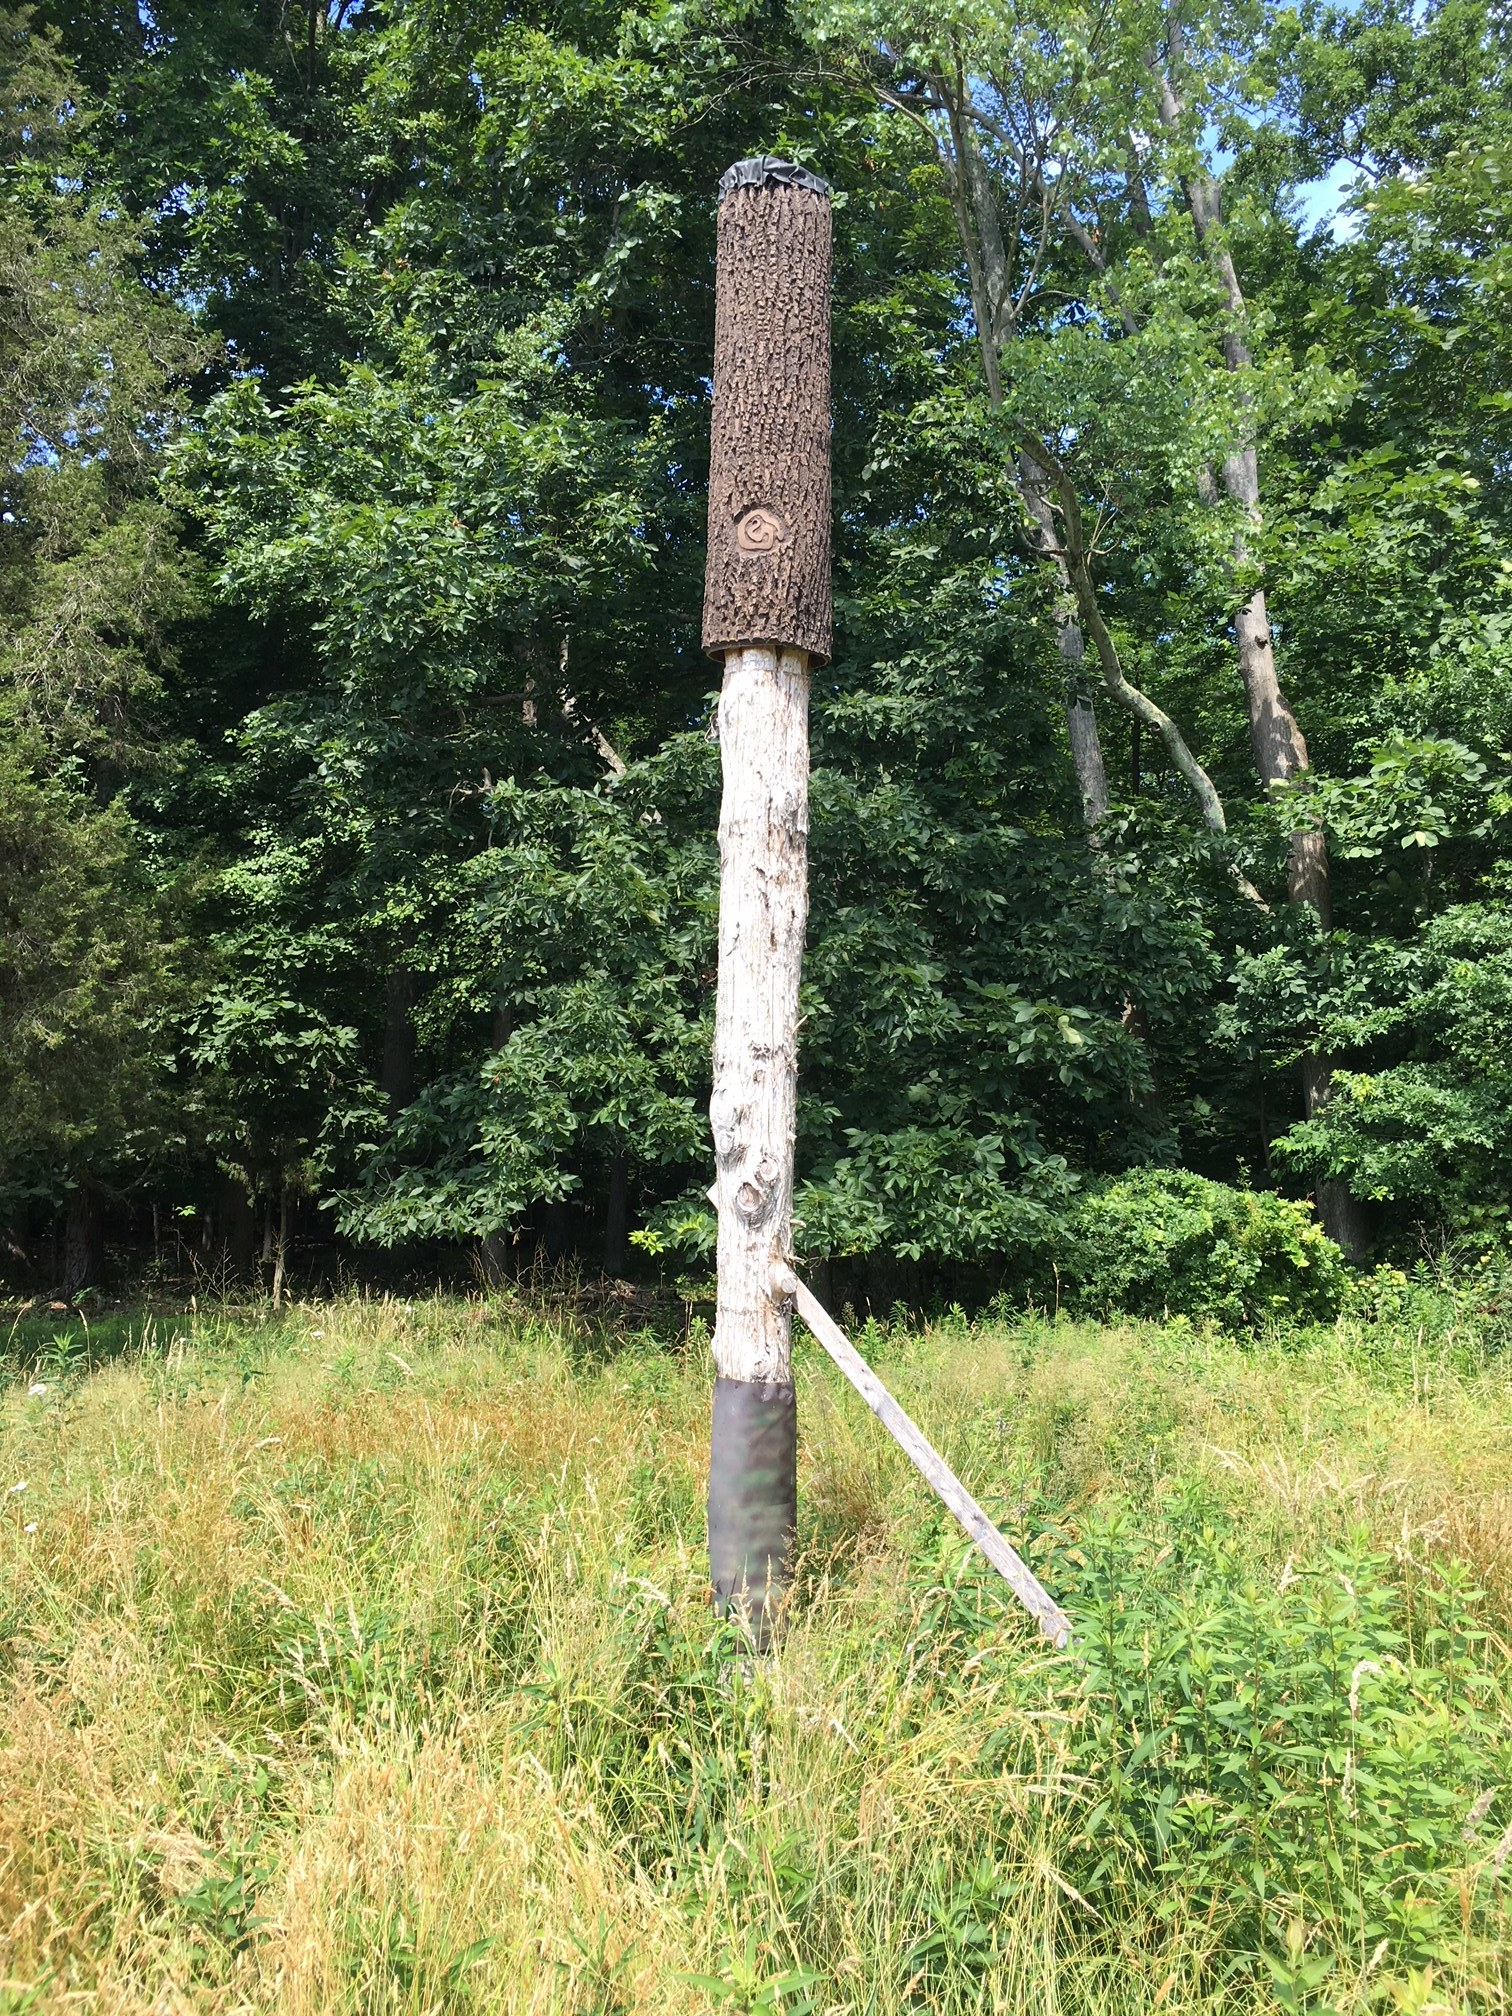 An occupied bat box at Magnolia's Pennsylvania mitigation complex